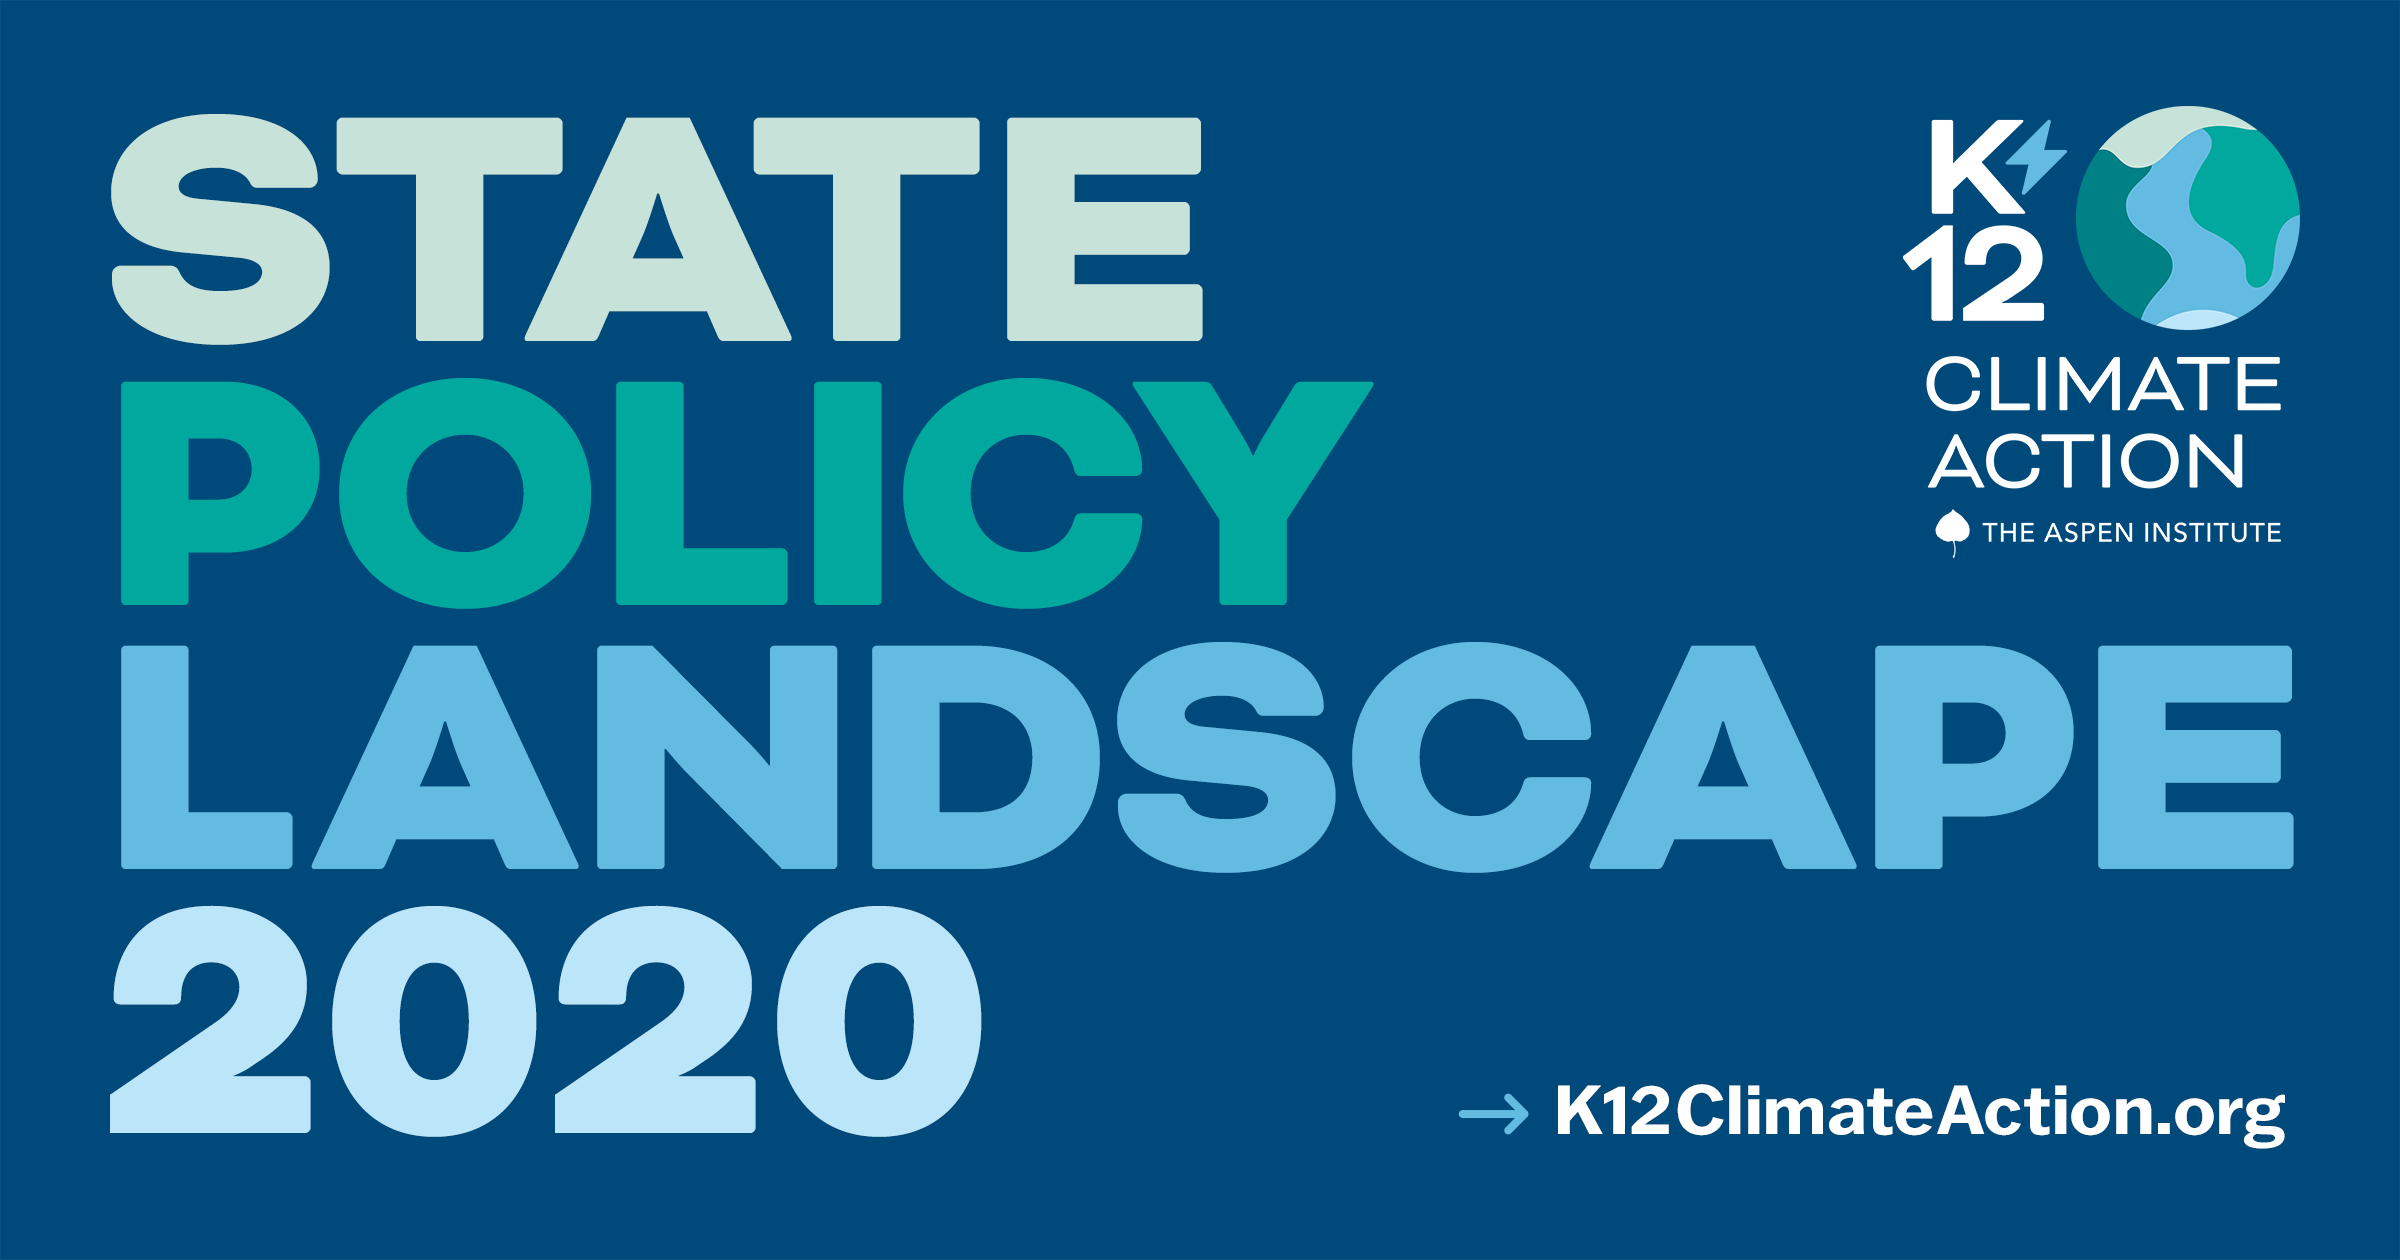 State Policy Landscape 2020